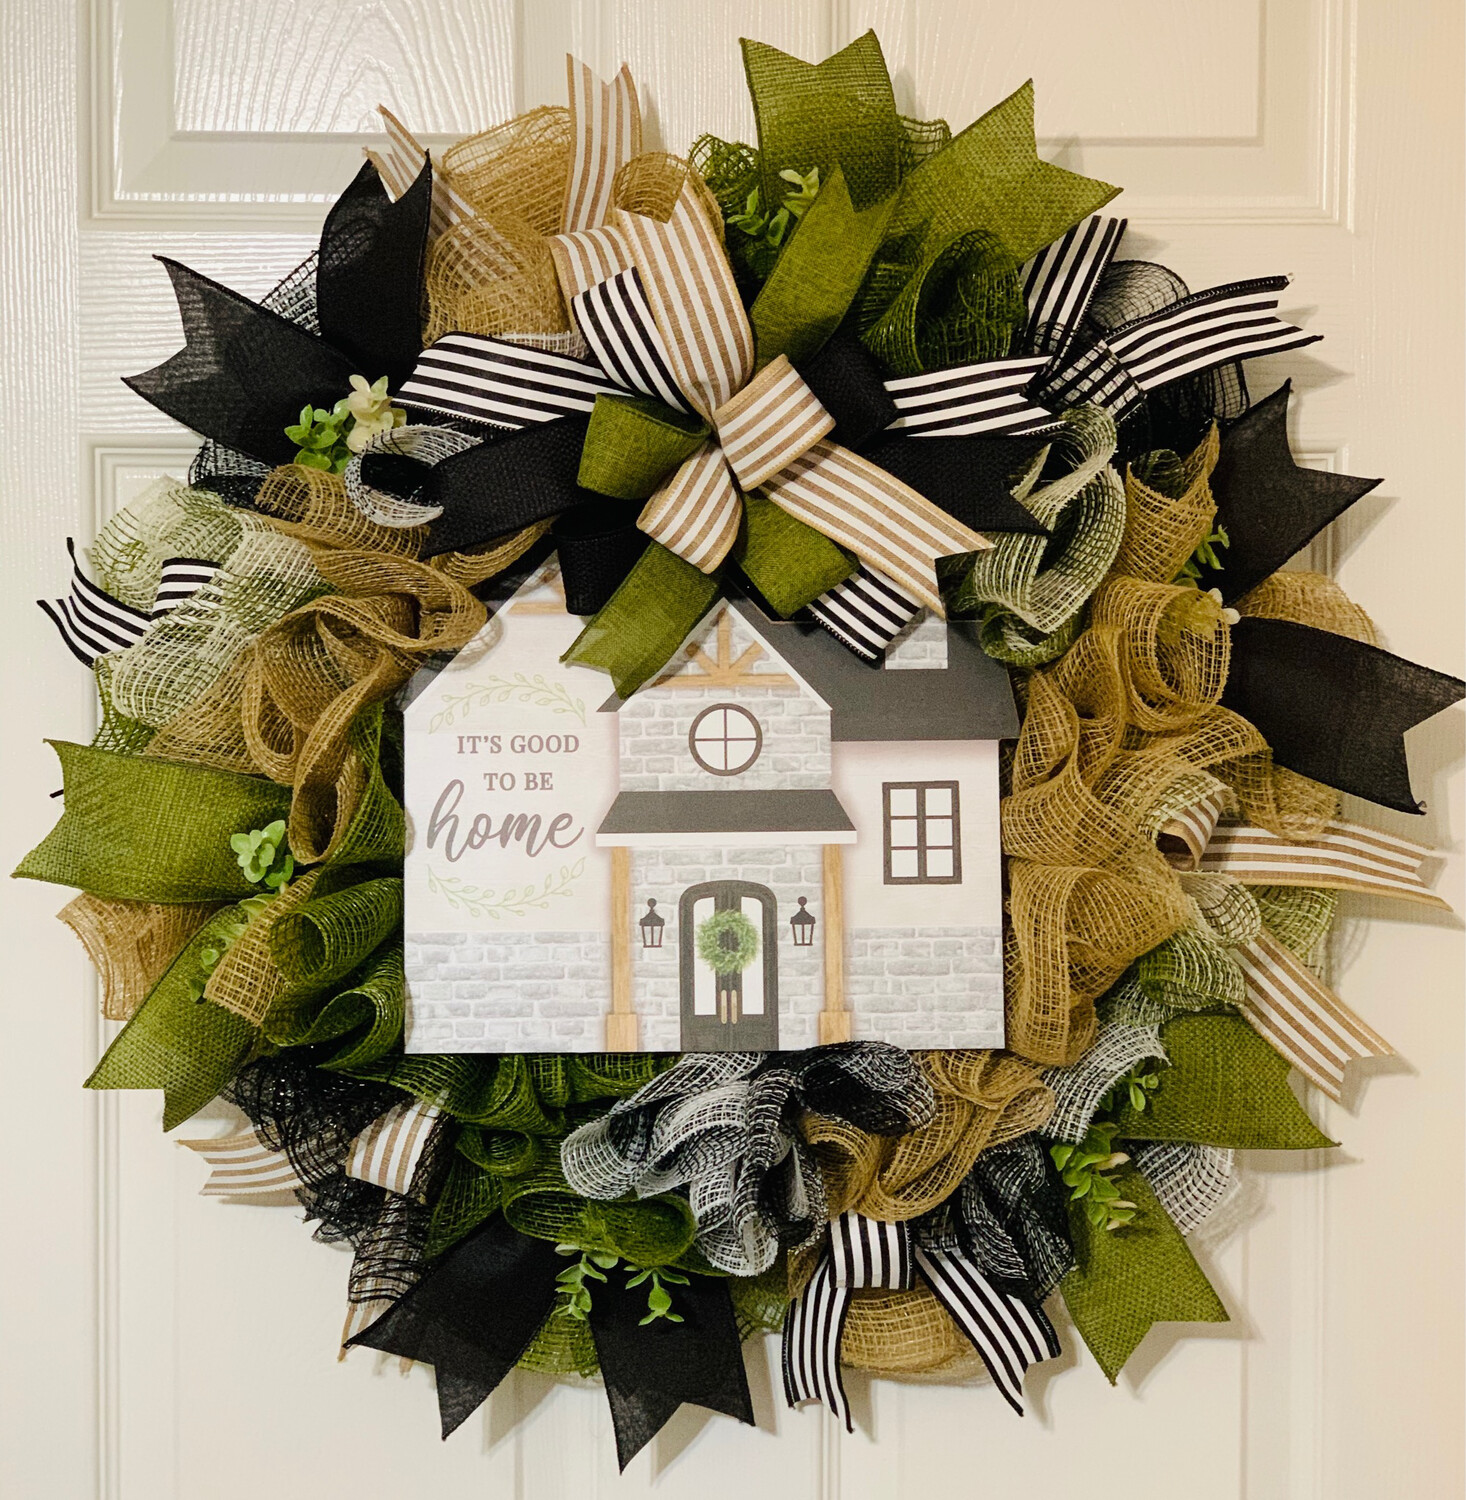 It's Good to Be Home, House Wreath, House Warming Gift, Welcome Home, A Touch of Faith